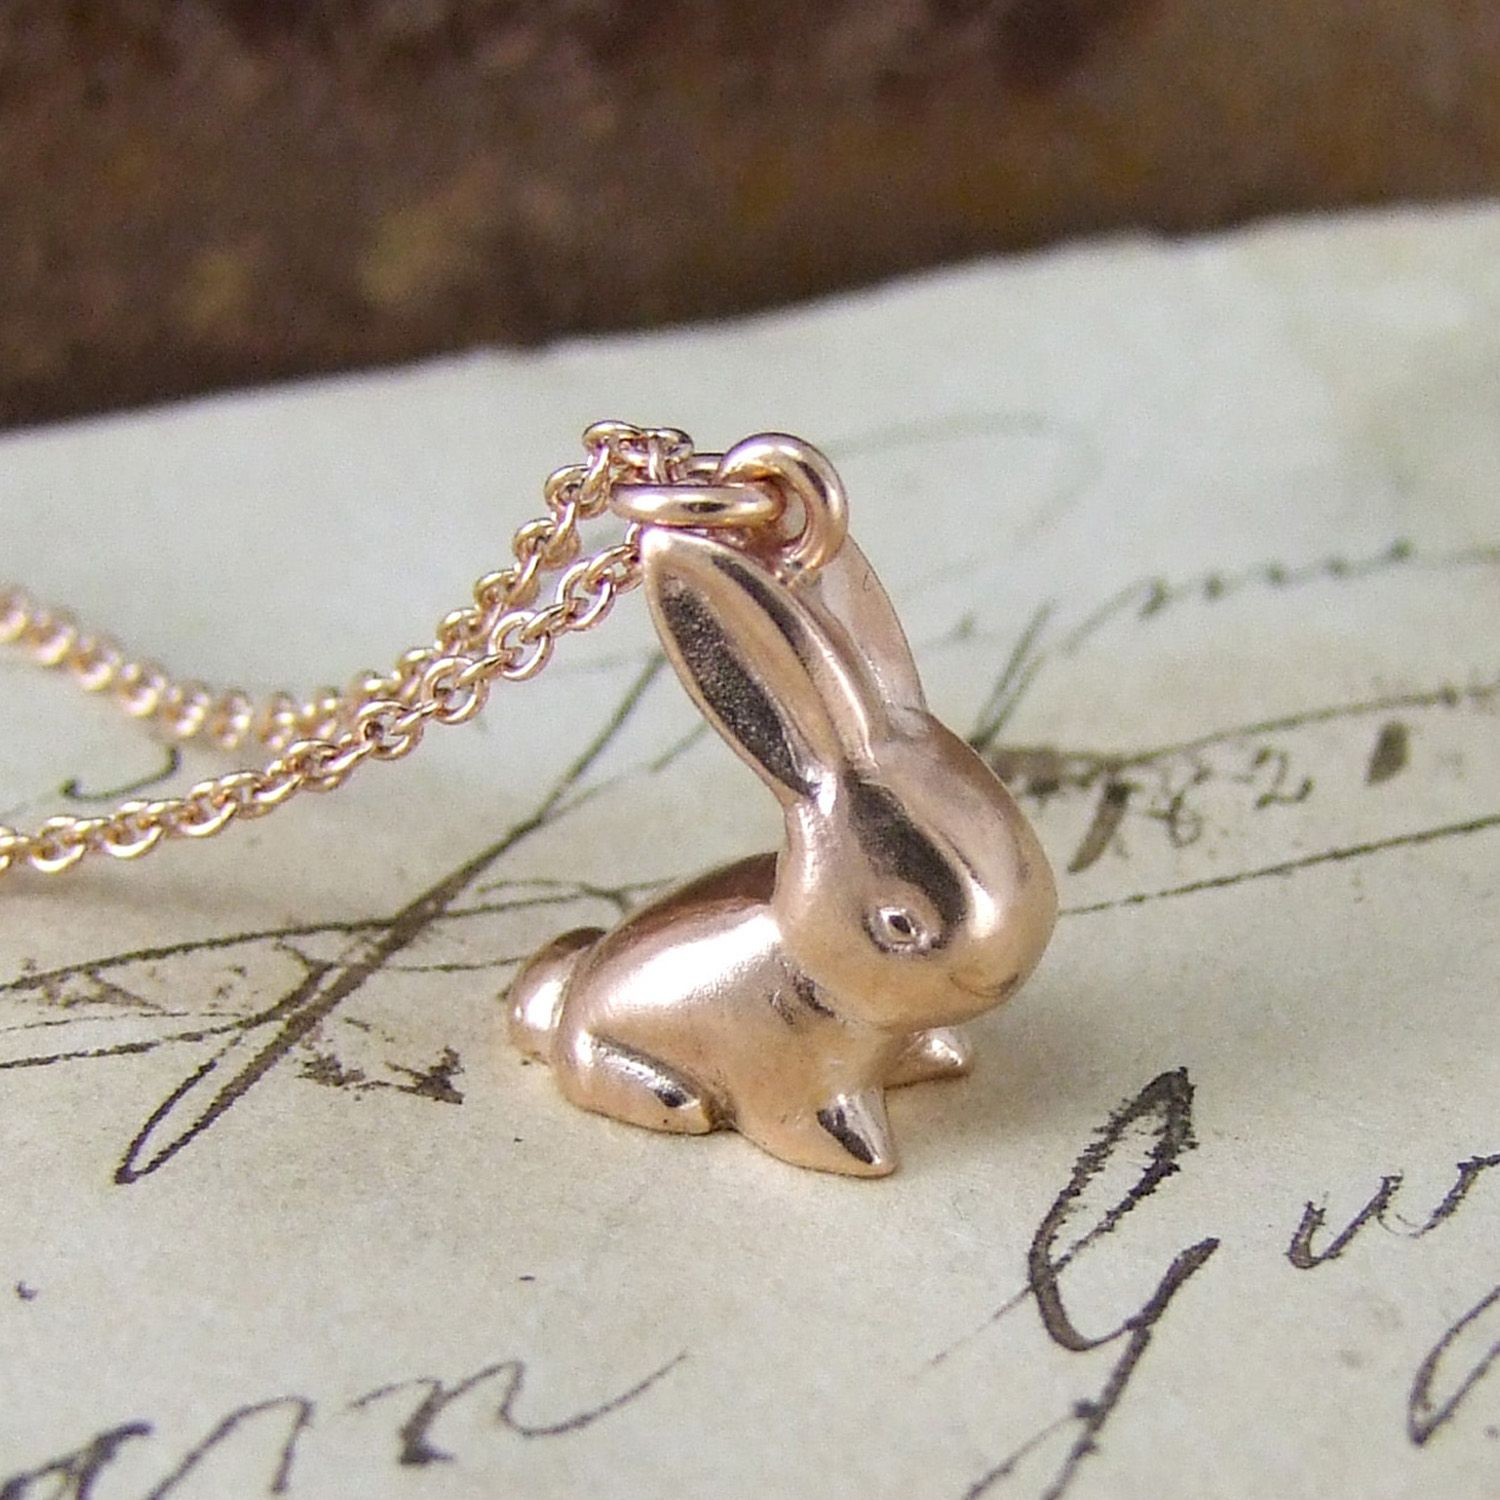 Vintage bunny pendant conejo pintowin one of our vintage bunny pendants personalised with your initial on the base aloadofball Images